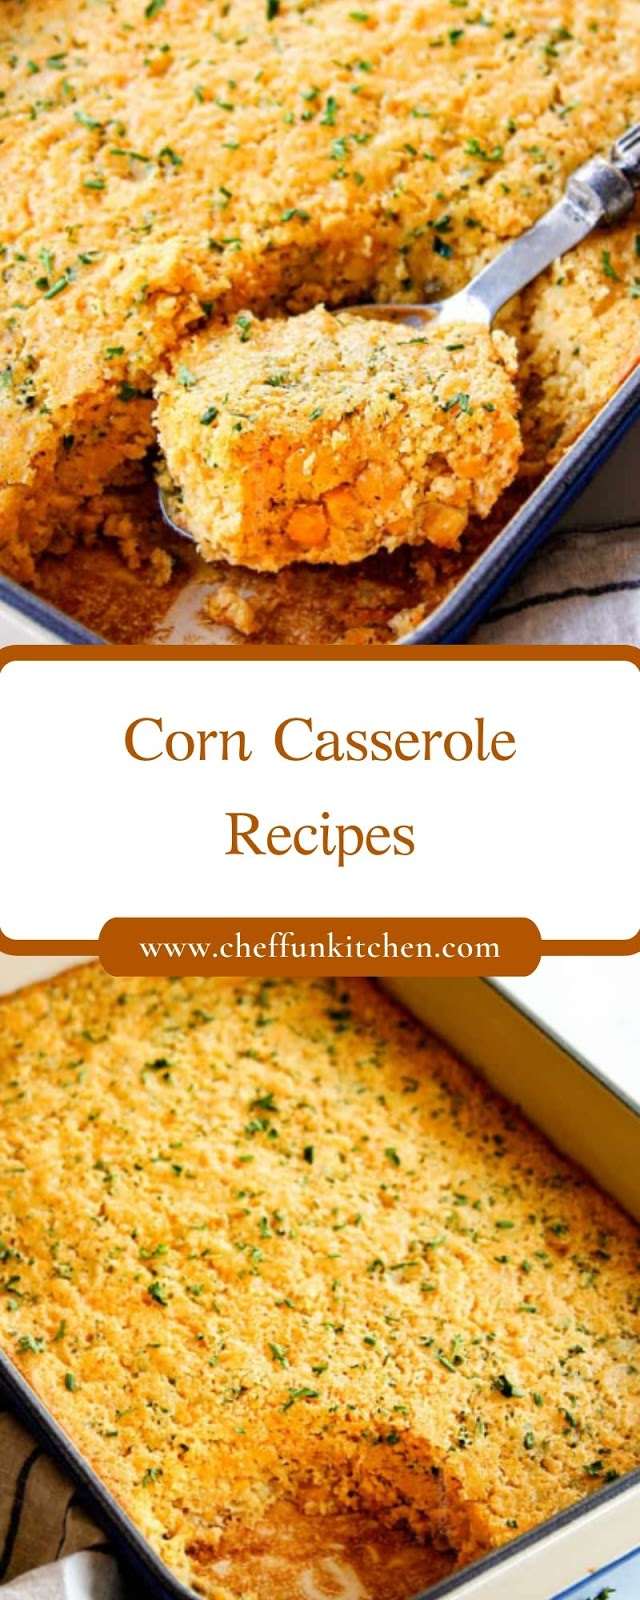 Corn Casserole Recipes